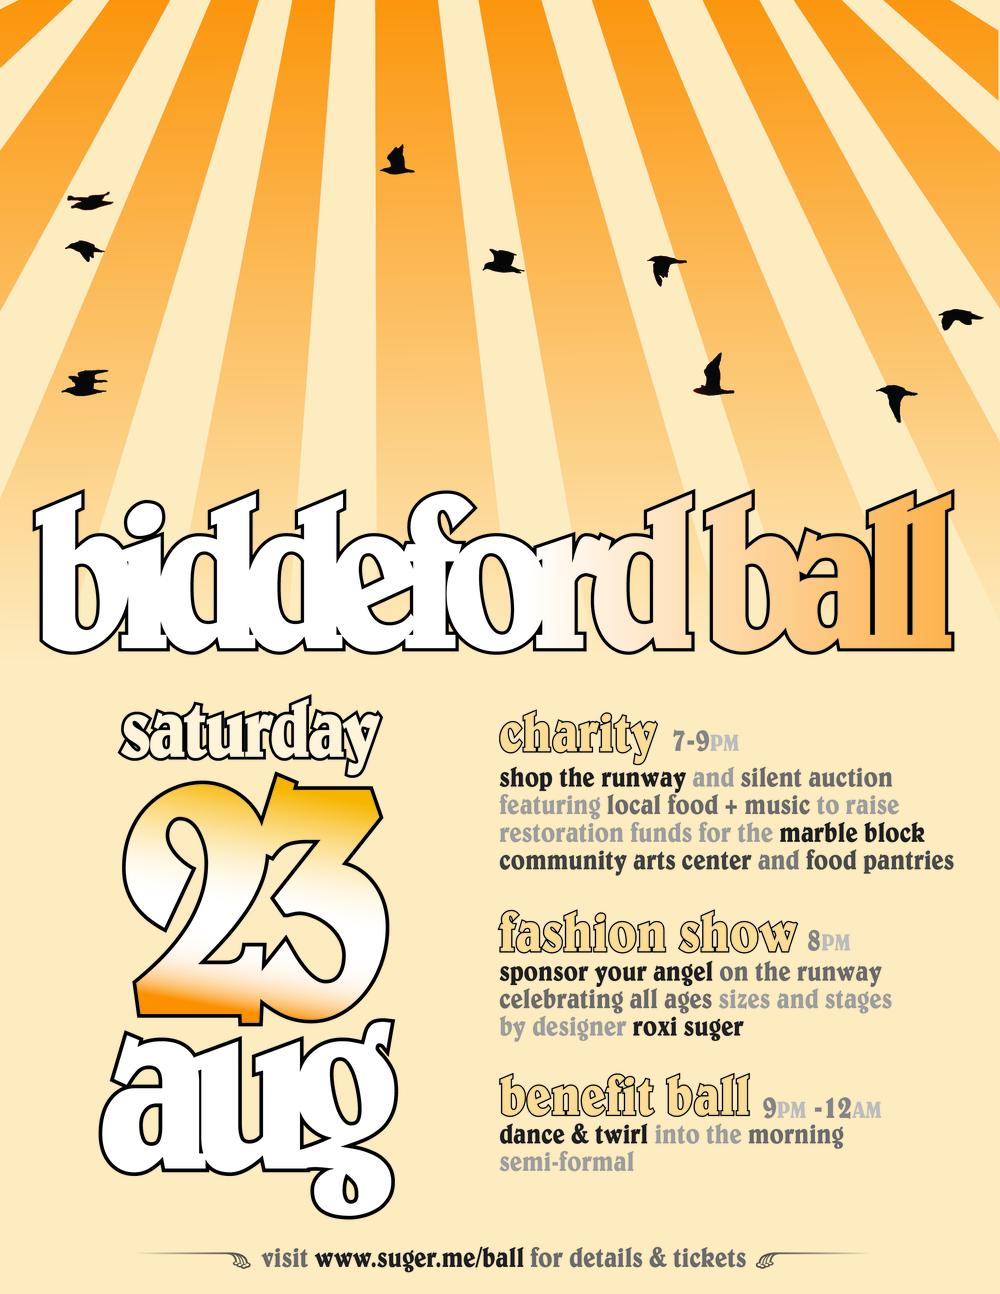 Please join us for the inaugural Biddeford Ball + Fashion Show benefit fundraiser from 7pm-midnight on August 23rd, 2014  This exciting event will raise funds for local food banks and the exterior renovation of the Marble Block, a historic building at 129 Main Street in Biddeford which is being transformed into a center for art and design by Engine, a not-for-profit community arts organization.  the event will take place inside Building 13 of the Pepperell Mill Campus located at the convergence of Alfred & Main Streets in Biddeford, Maine.   The event schedule will include: 7pm-9pm: Makers Market and Silent Auction 9 pm: Fashion show featuring Angelrox on a glorious range of women celebrating all body types, ages & sizes 9pm-12am: The Ball featuring live music by Old Soul, beats by DJ Mike Rovin and outrageous videos by Julian Schlaver More information: We are so excited about the diversity of our beautiful models we will be featuring on the runway including nationally acclaimed author Anita Shreve, the mayor of Biddeford, Alan Casavant, owner of Pepperell Mill Campus, Doug Sanford, (men are being dressed by Portland Dry Goods), the graceful and loving Pastor of Union Church, Jan Hyrniewicz, the sexy Jenn Jones, the sweet momma Delilah with her daughter Lilyana, Dana & Devin Johnson along with many more amazing women, girls and men to list here.  We are thankful for their support and that of their fans as folks are very generously pledging to see their favorite models walk the runway.  You can find the names of all our models if you click on our pledge button below and contribute further to the cause by donating whatever amount you like  You can learn more about the Marble Block project at feedtheengine.org/marble-block  ENGINE, located in the heart of Biddeford, Maine, is a non-profit arts organization. Engine's mission is to make arts-driven programming, cultural development, and sustainable creative entrepreneurialism an explicit community value and civic priority in Biddeford. ENGINE is the home to the Maine Fablab in addition to running at contemporary gallery space at 265 Main street. feedtheengine.org UNION CHURCH MISSIONS is committed to the local food banks of York county: unionchurchme.com SUGER, a boutique located at 25 Alfred Street in Biddeford, ME.  Suger is the sweet home of Angelrox, a nationally distributed line of comforting versatile women's clothing crafted with joy in new england from sustainable fabrics. layered with goodies, jewelry and gifts wrapped prettily & ready to give.  suger donates a portion of its sales each month to local charity. HEART OF BIDDEFORD is our brilliant Main Street Community organization working tirelessly to improve our downtown and turn it into one of the sweetest spots in America.